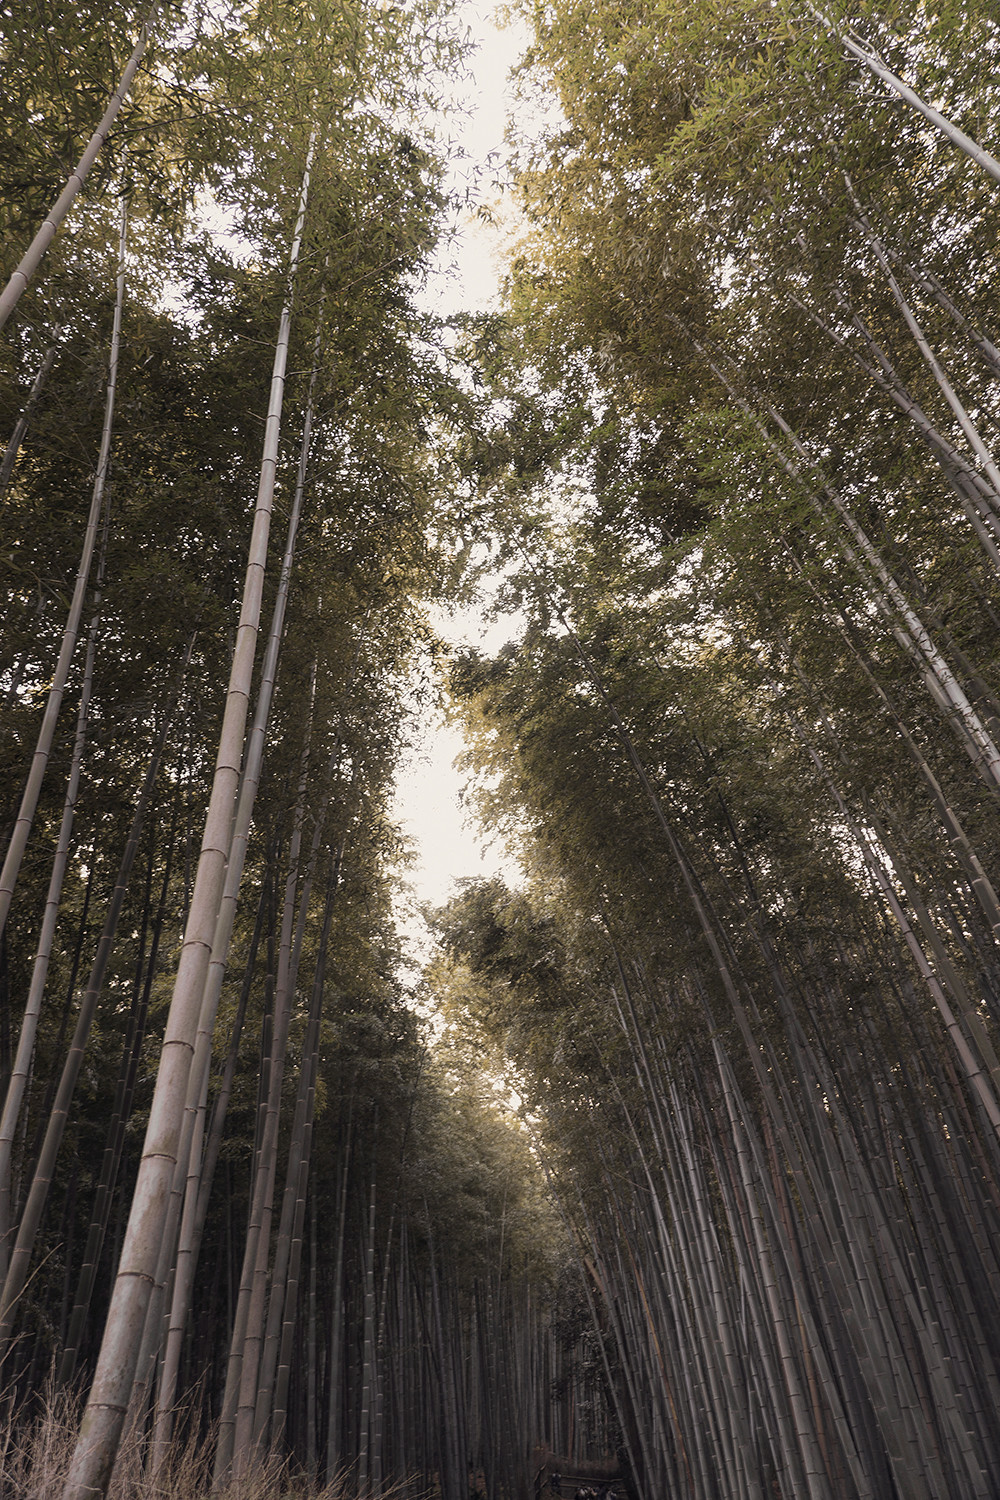 08kyoto-arashiyama-bambooforest-japan-landscape-travel